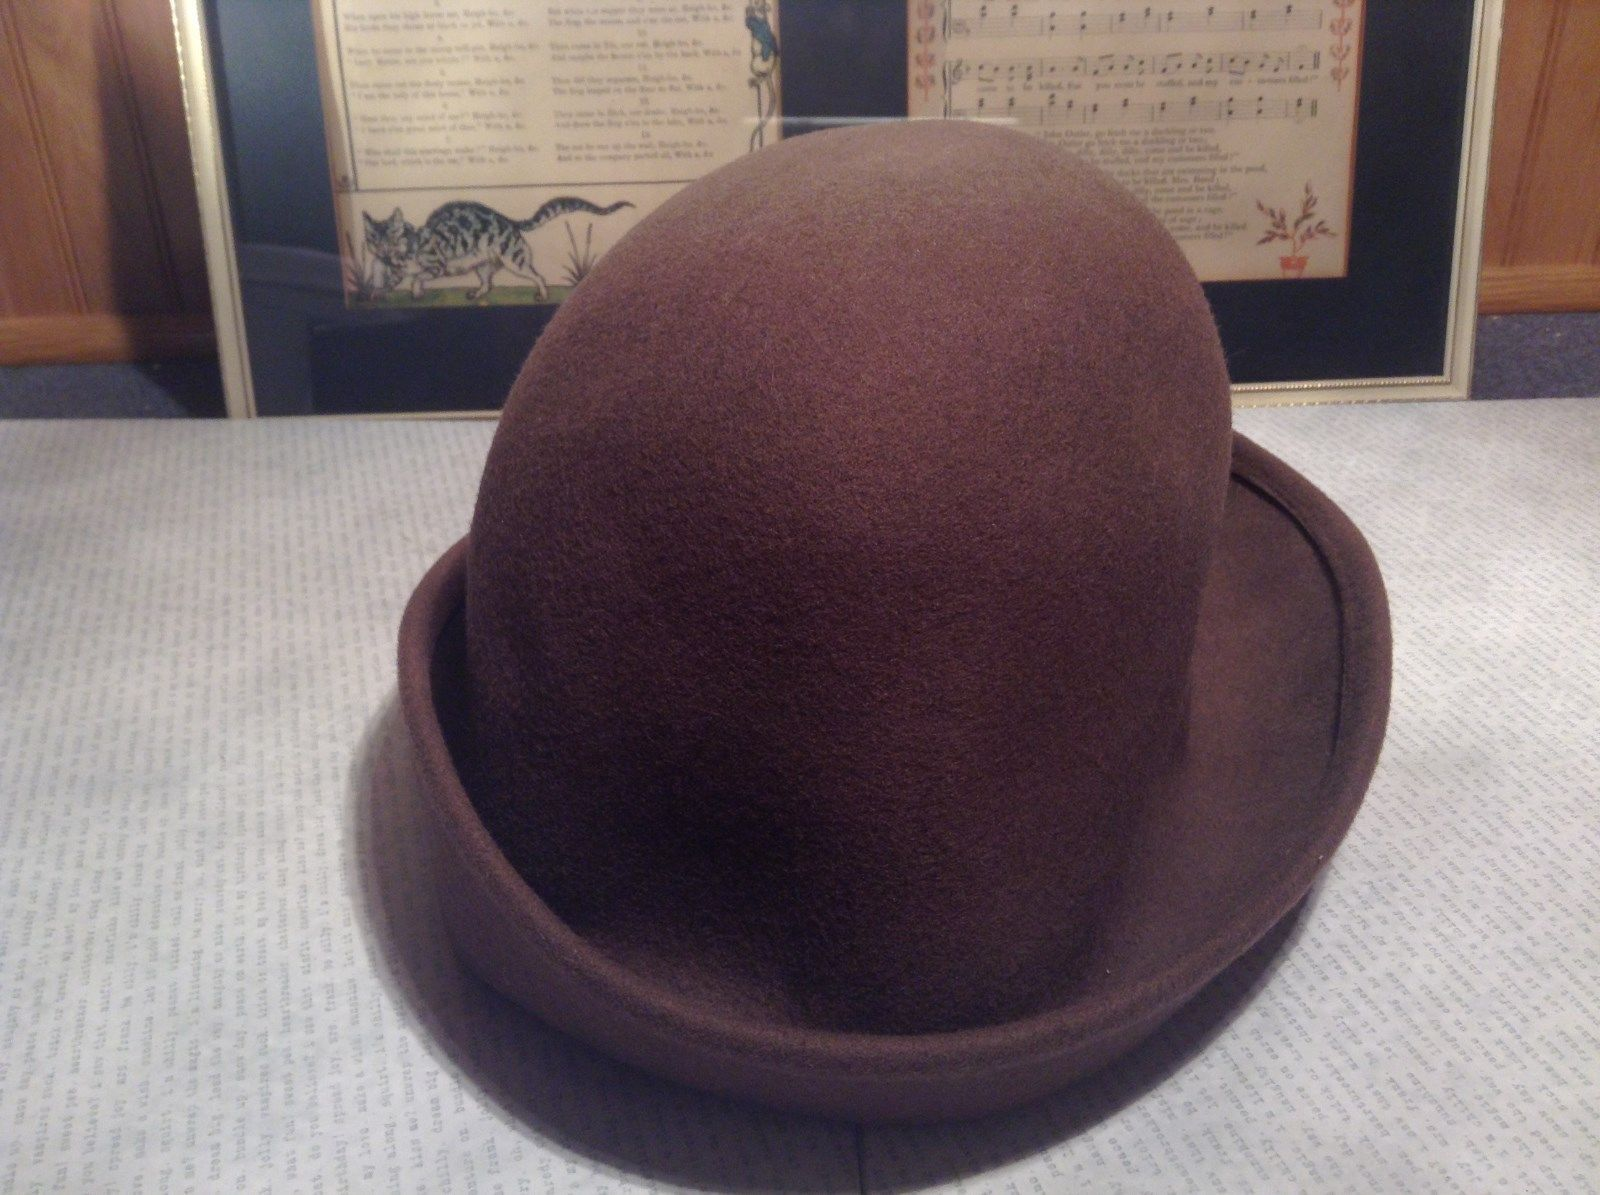 Brown Felt Hat Toucan Brand 12 Inches Long 8 Inches Wide Very Nice